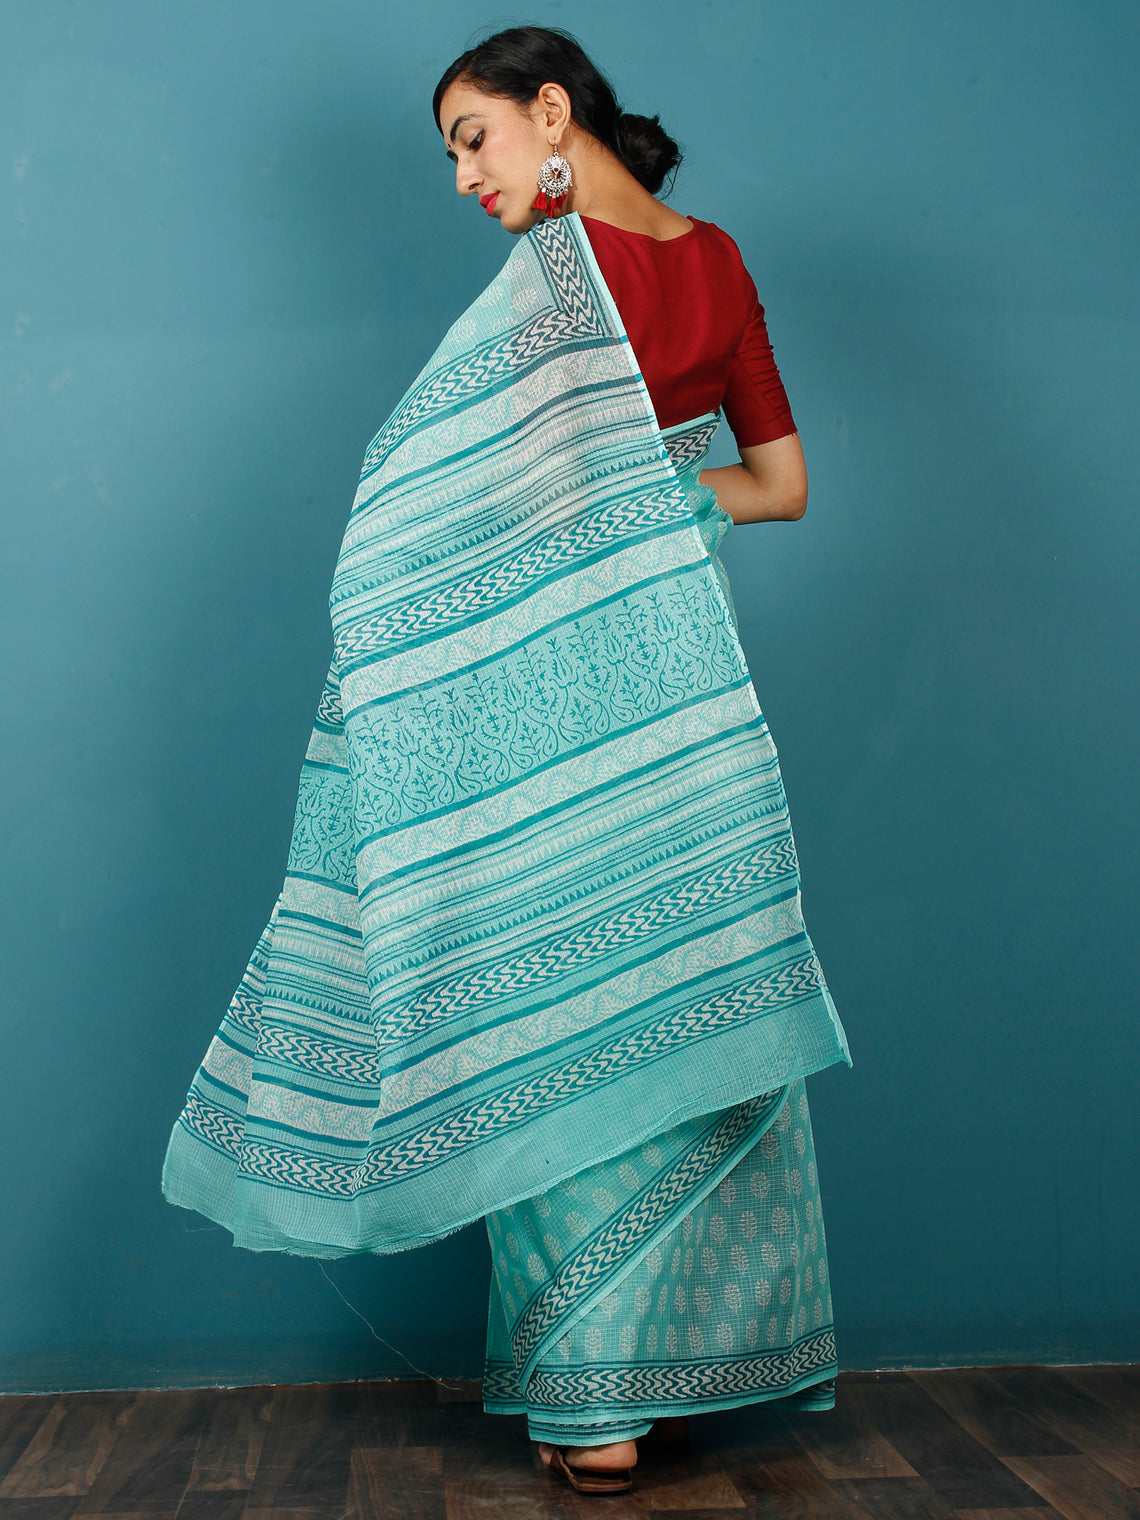 Sea Green Ivory Hand Block Printed Kota Doria Saree in Natural Colors - S031702828